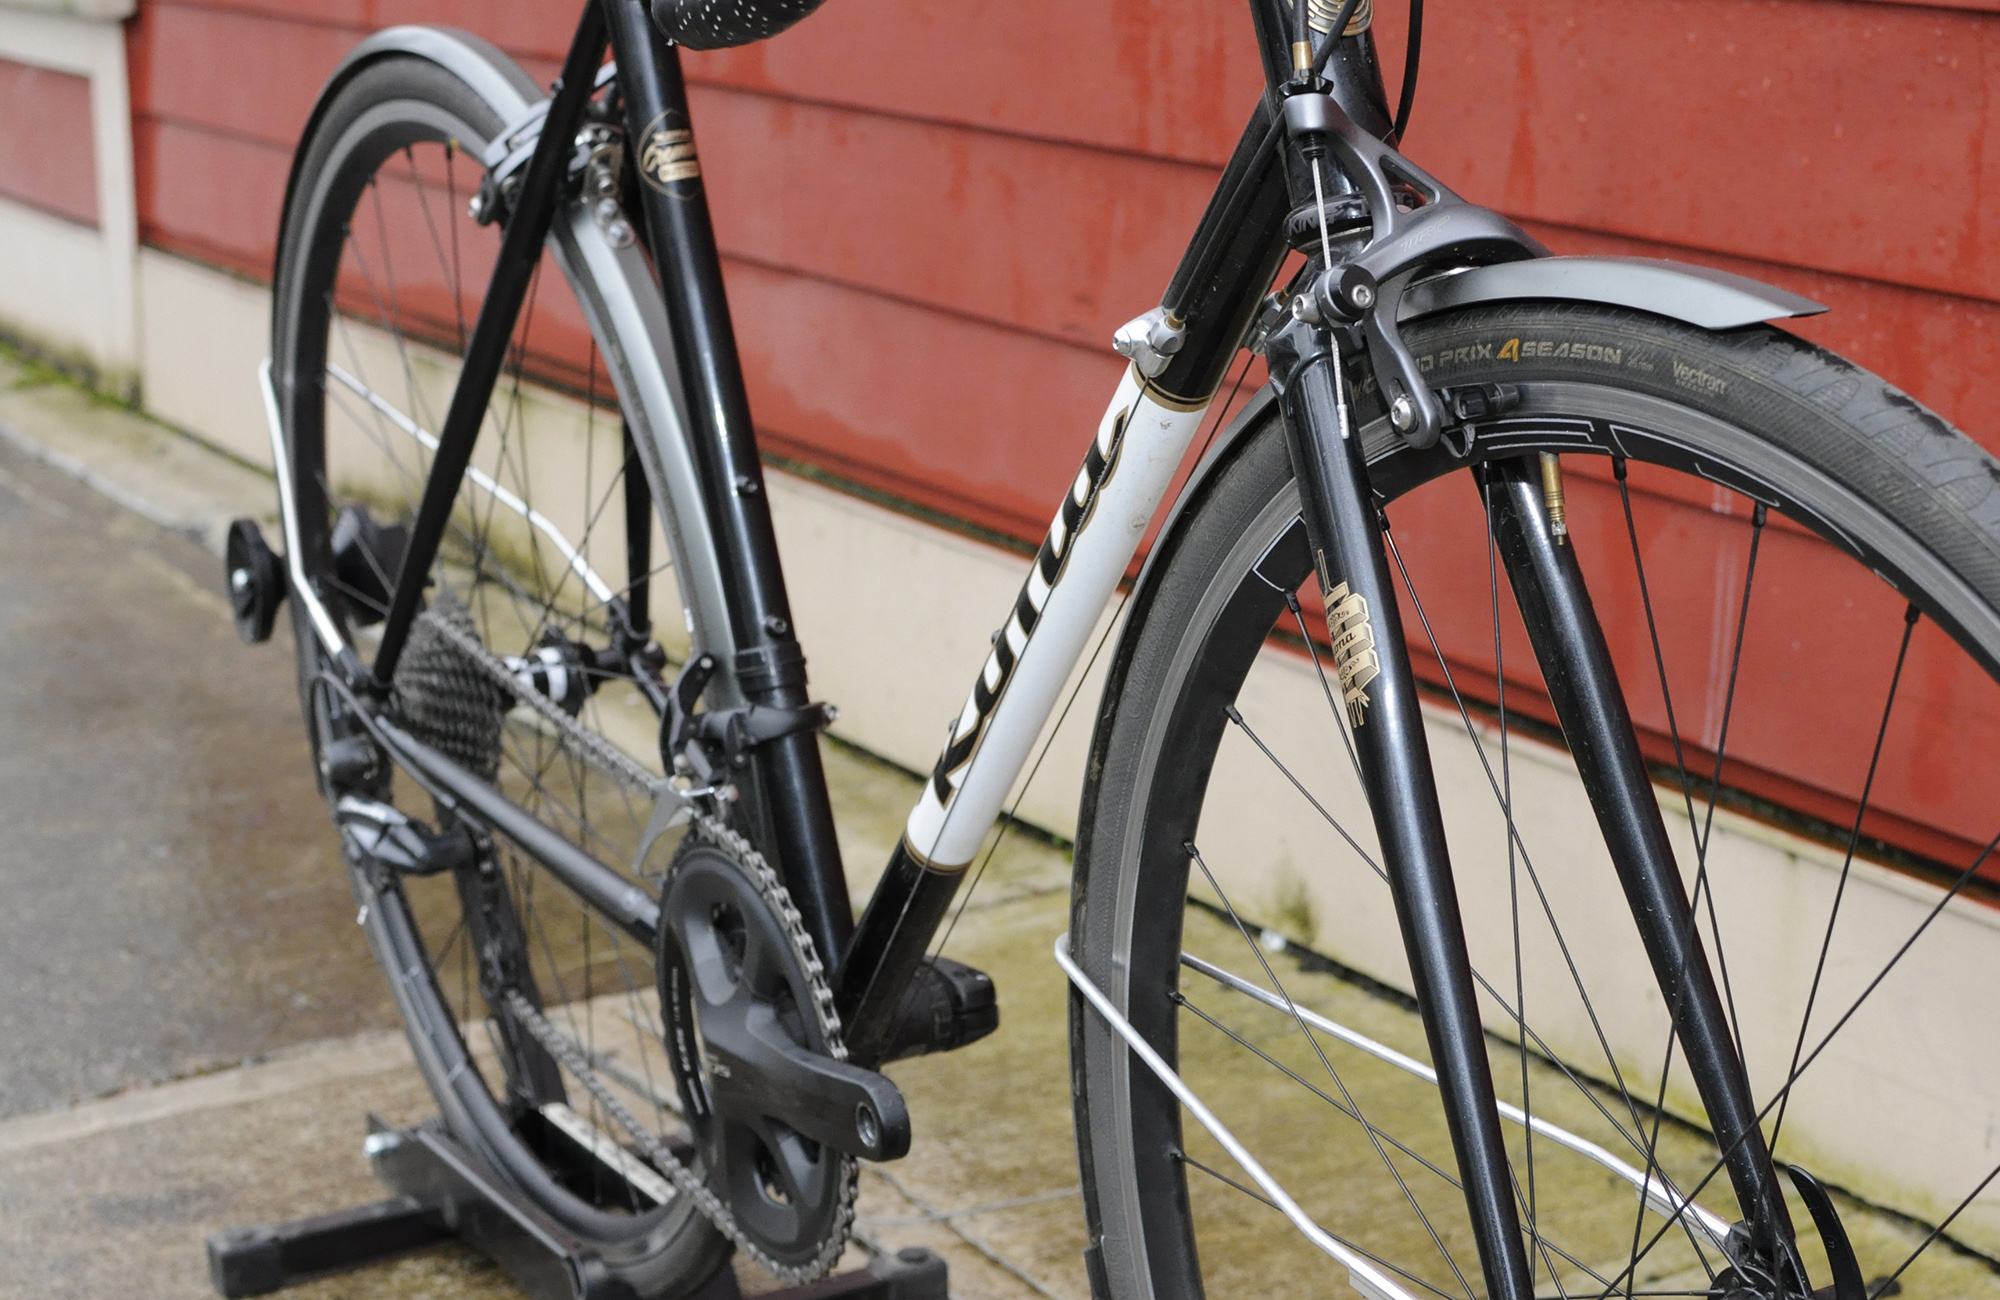 winter bike commuting essentials PDW full metal fenders